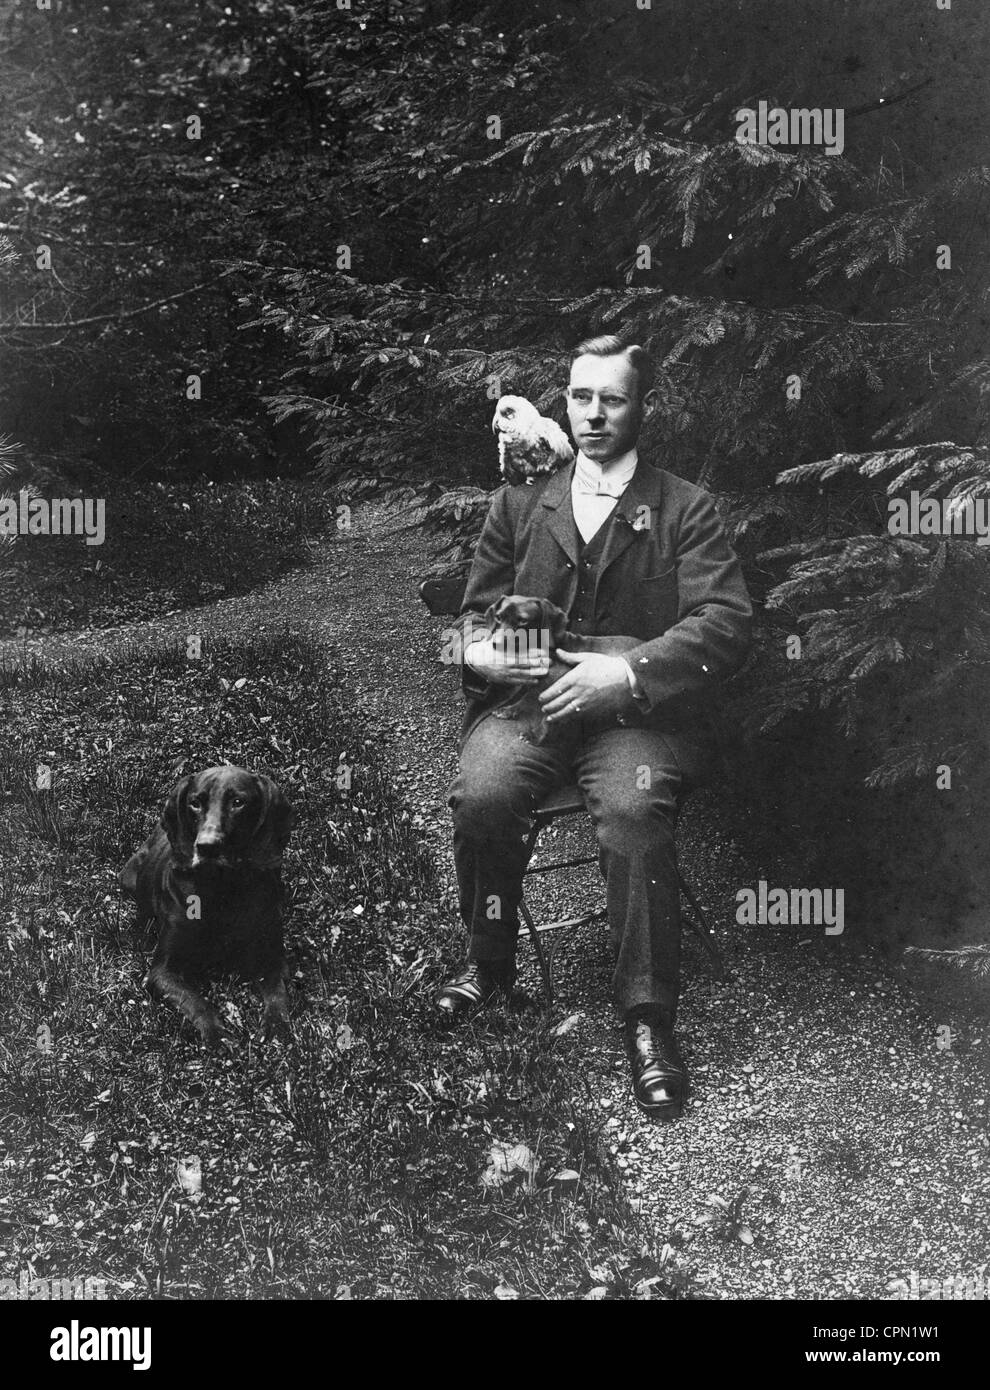 Wealthy Young Man Outdoors with Two Dogs & Parrot - Stock Image